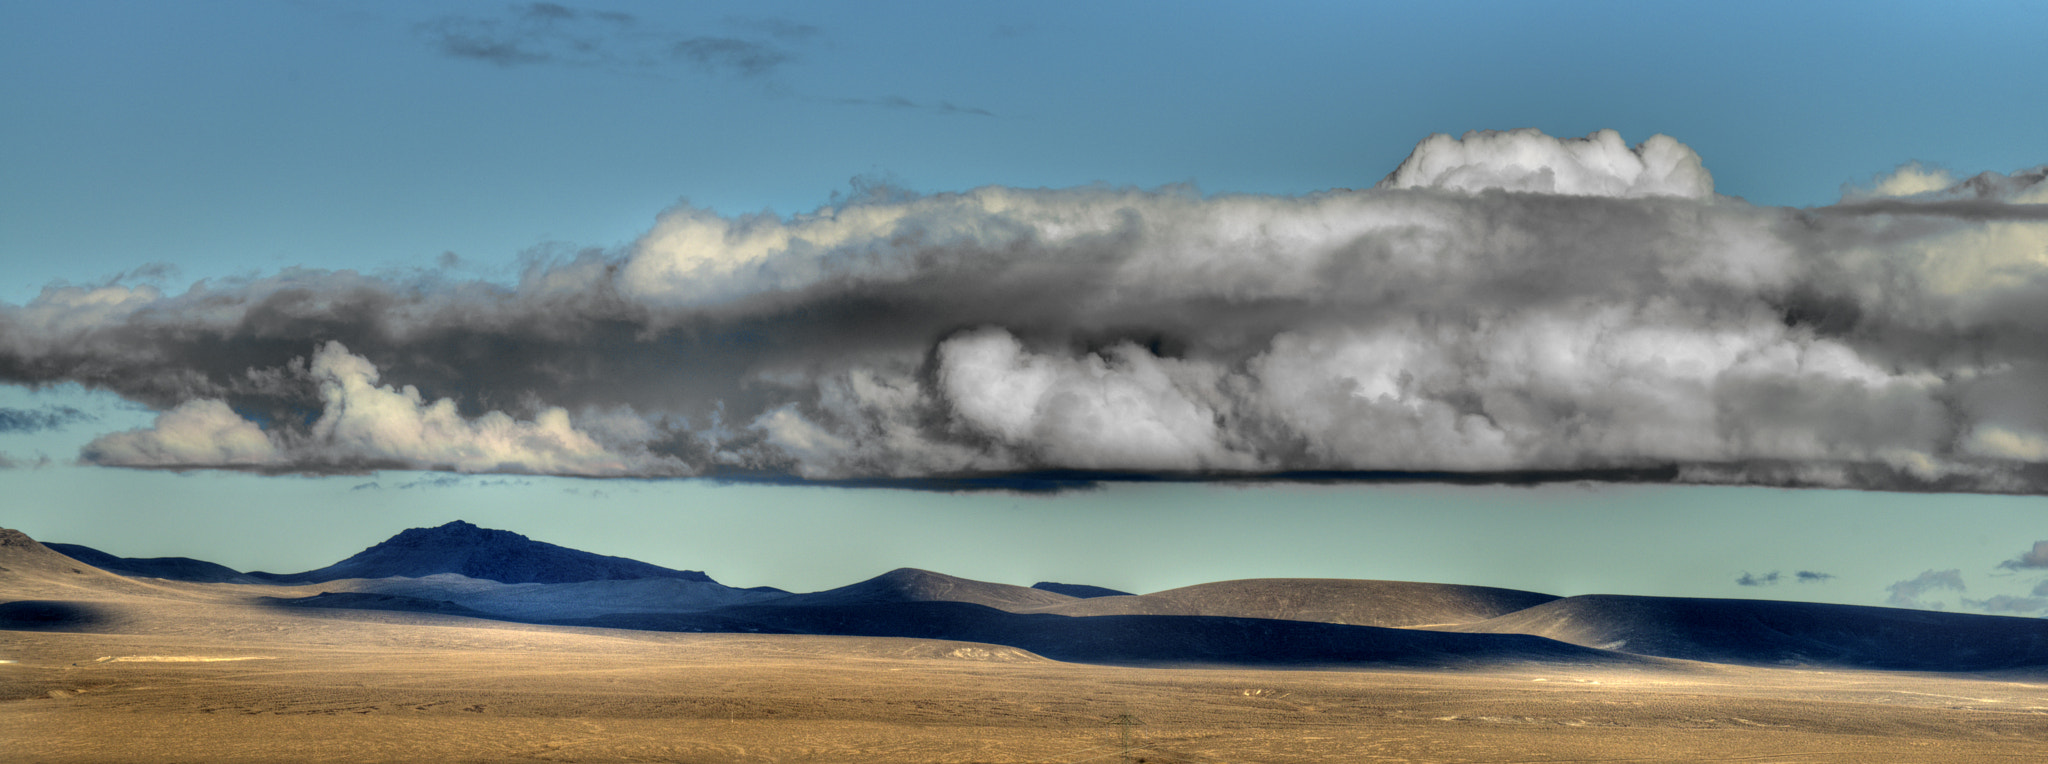 Photograph Ominous Clouds near Fernley by Dianne Phelps on 500px